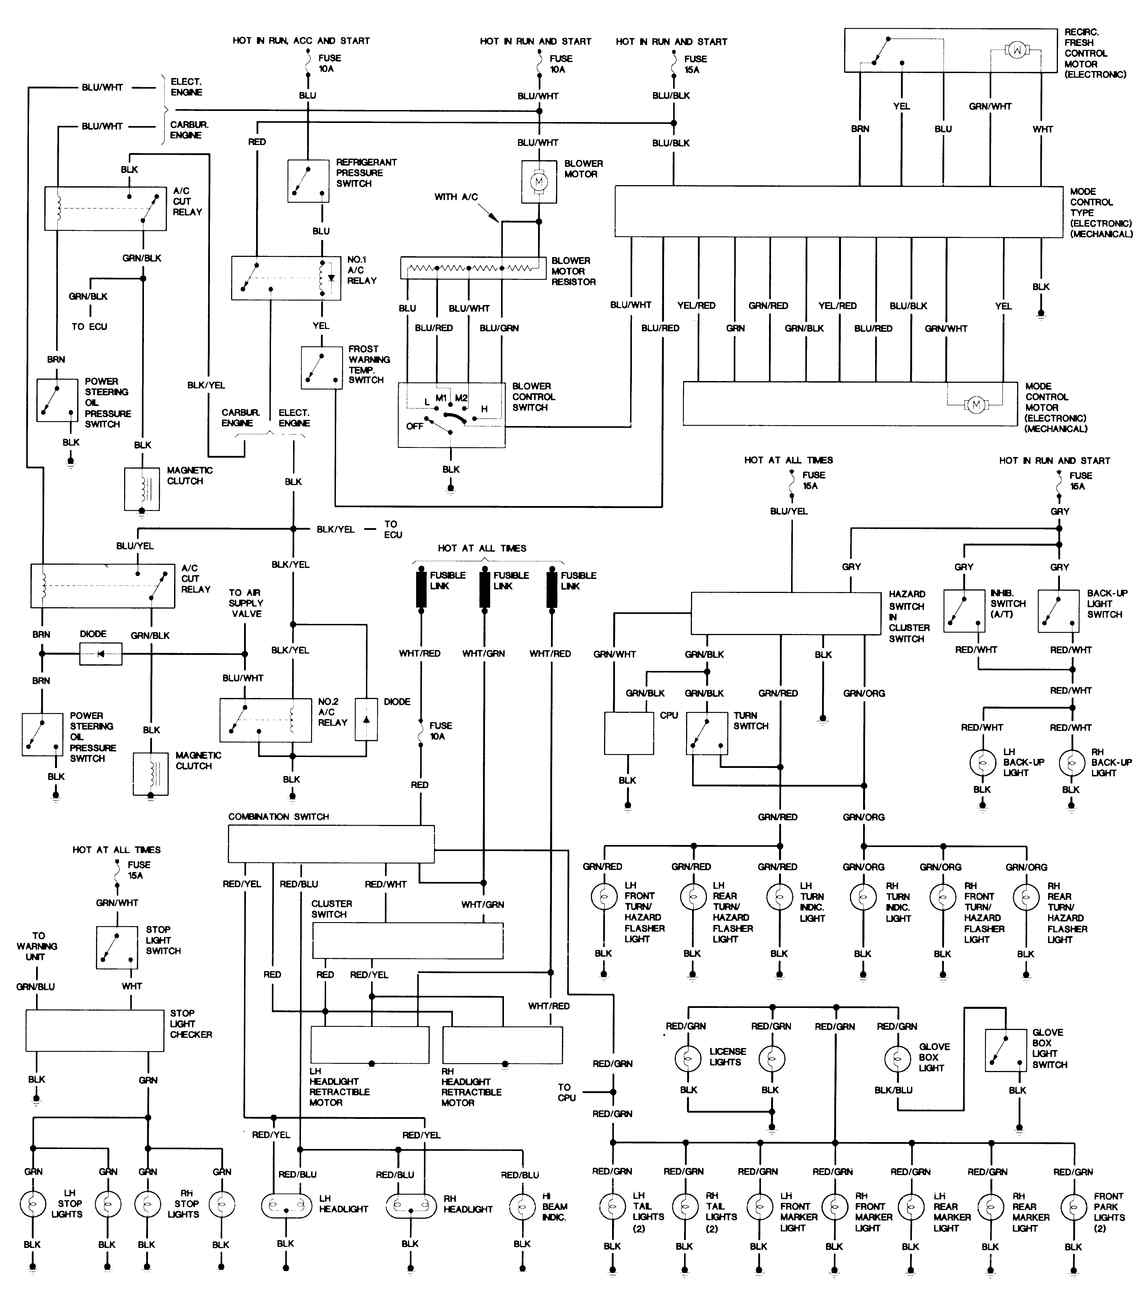 1980 rx7 wiring diagram 1980 printable wiring diagram database 1984 mazda rx7 wiring 1984 home wiring diagrams source